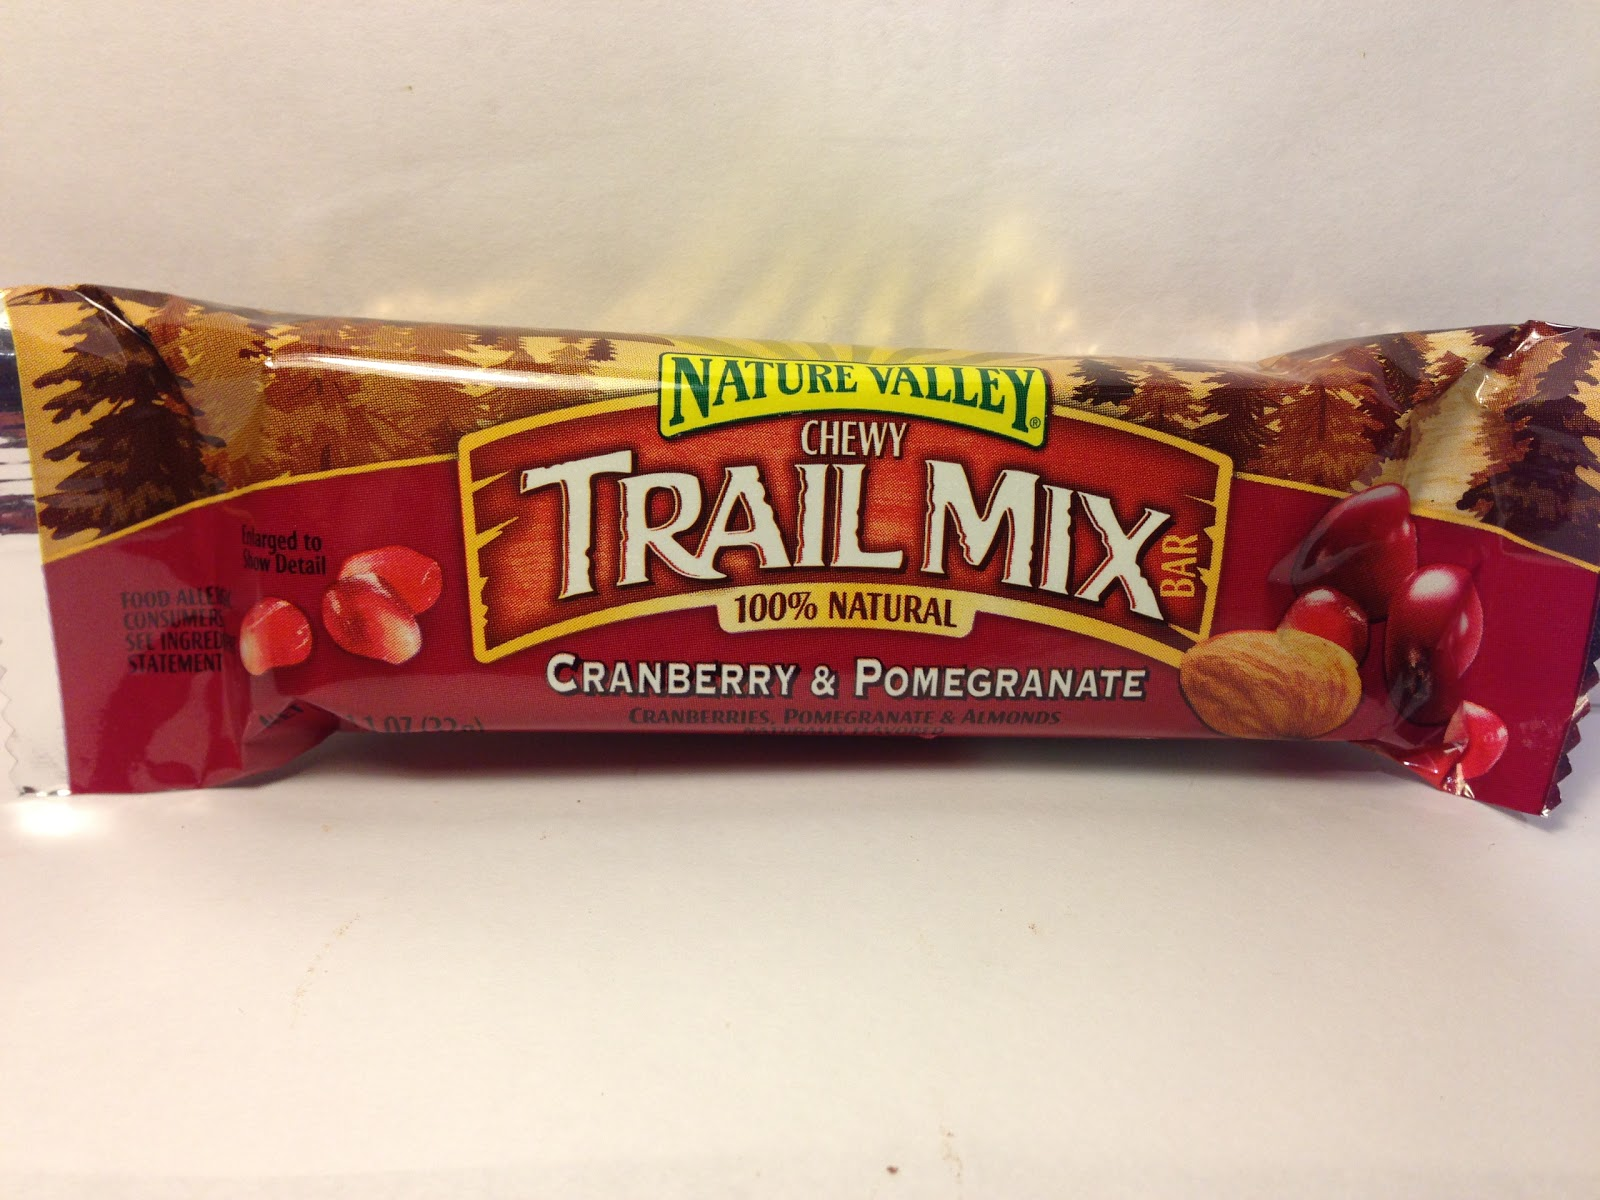 ... : Review: Nature Valley Chewy Trail Mix Cranberry & Pomegranate Bar